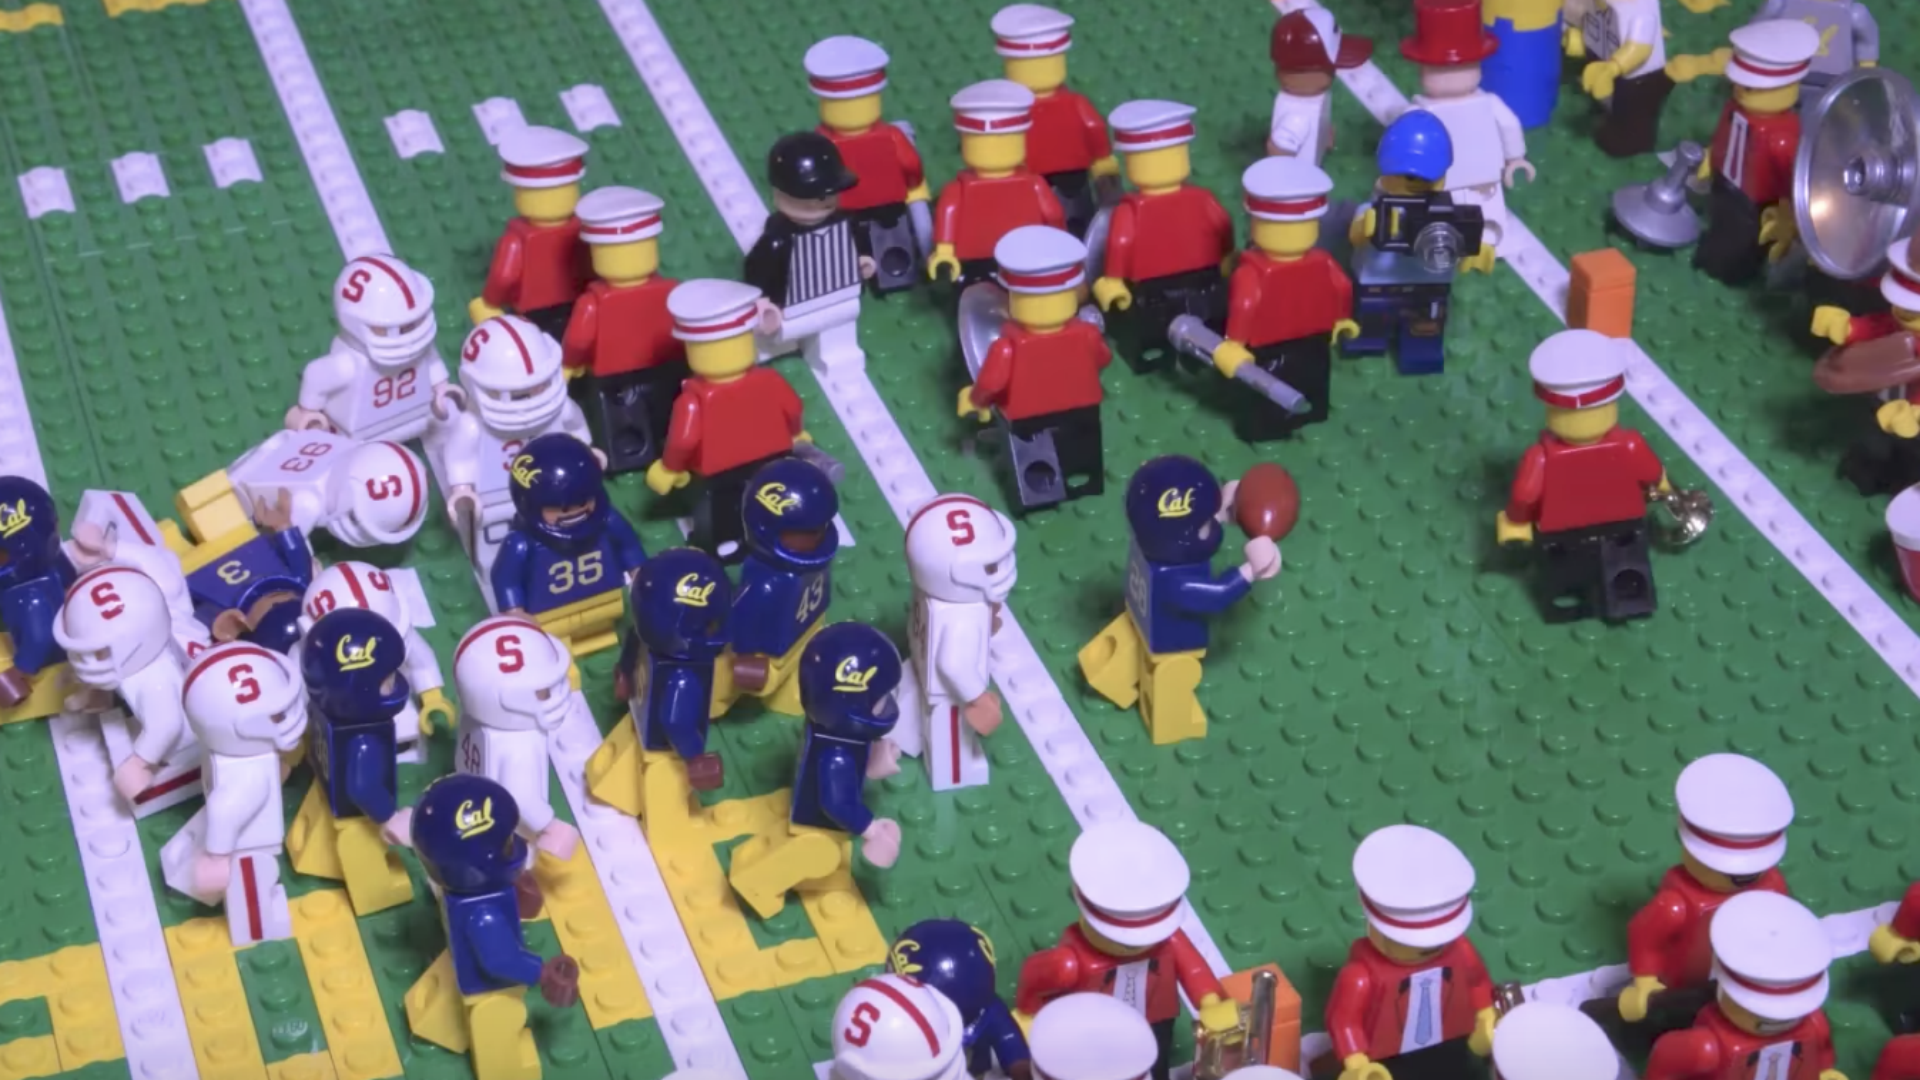 'The Play' gets amazing Lego recreation